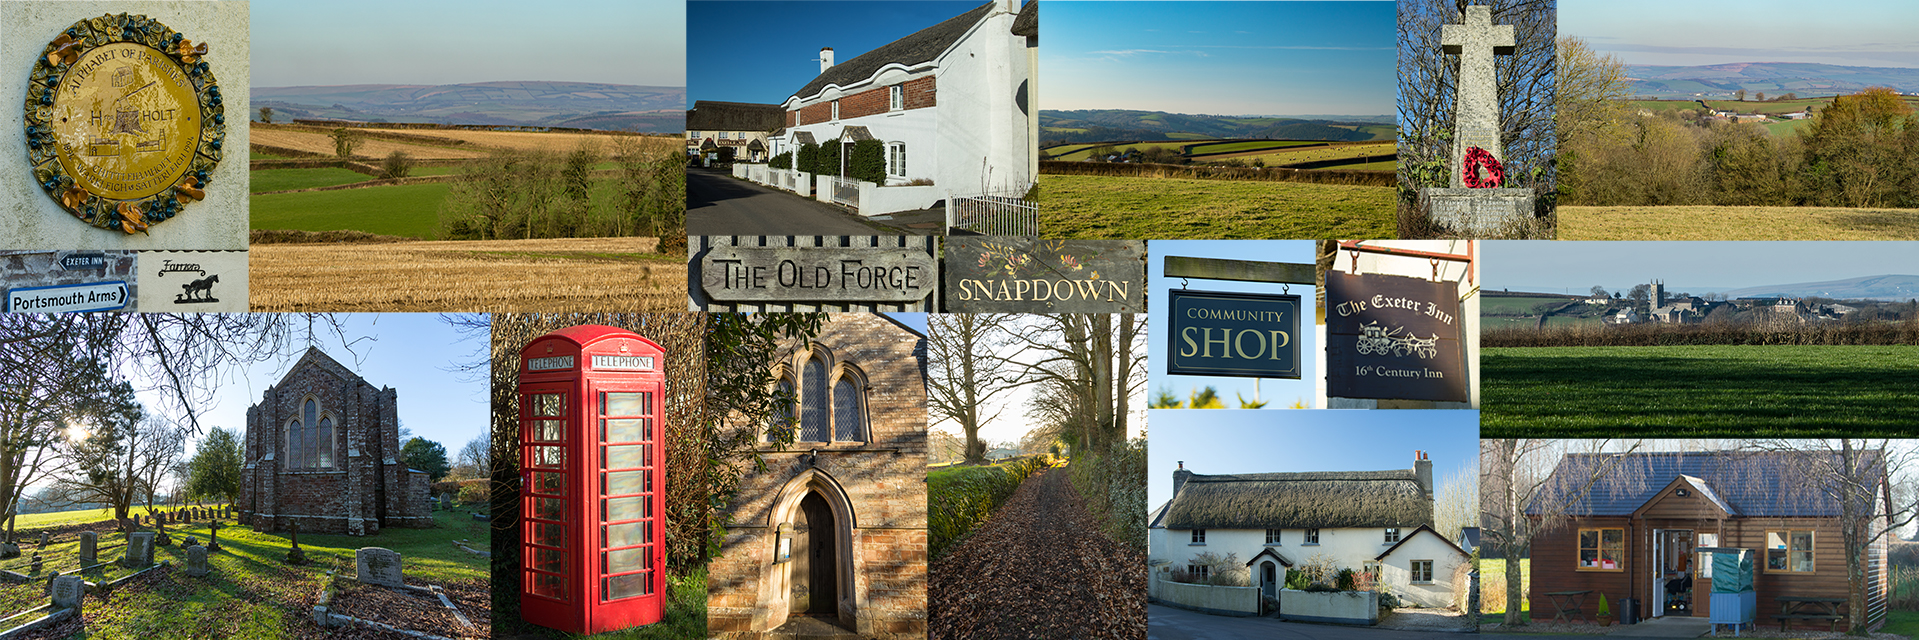 Montage of images from Chittlehamholt, Satterleigh and Warkleigh